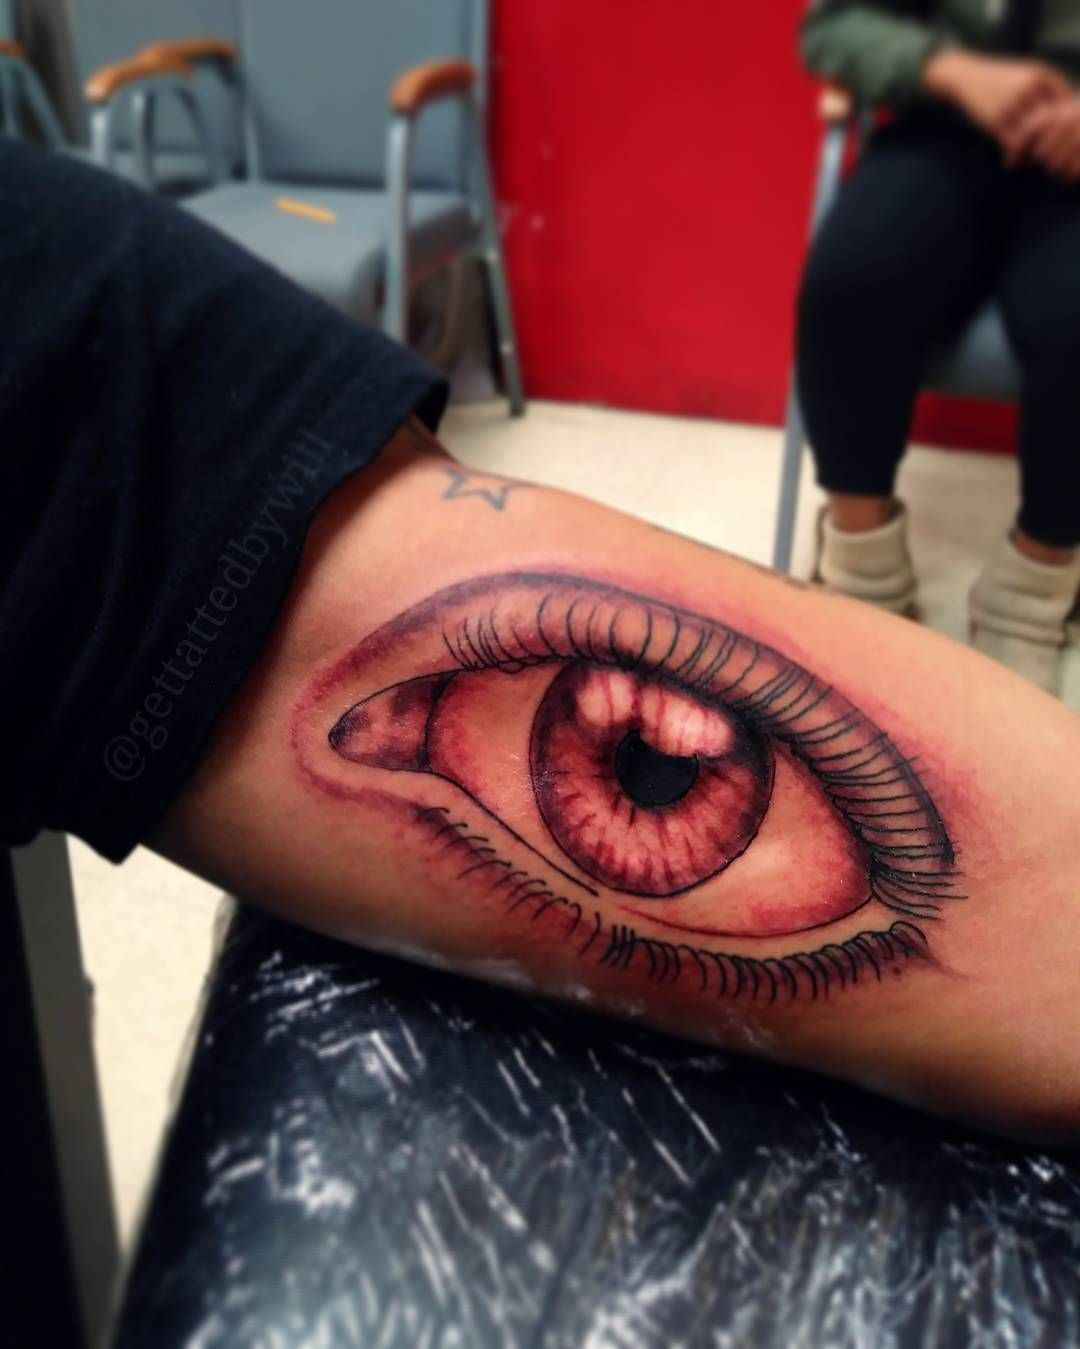 Eyetattoo Northphilly Southphilly Westphilly Uptownphilly Mtairy Frankford Philly Philadelphia Phillytattoo Eye Tattoo Tattoo Magazines Tattoo Shop